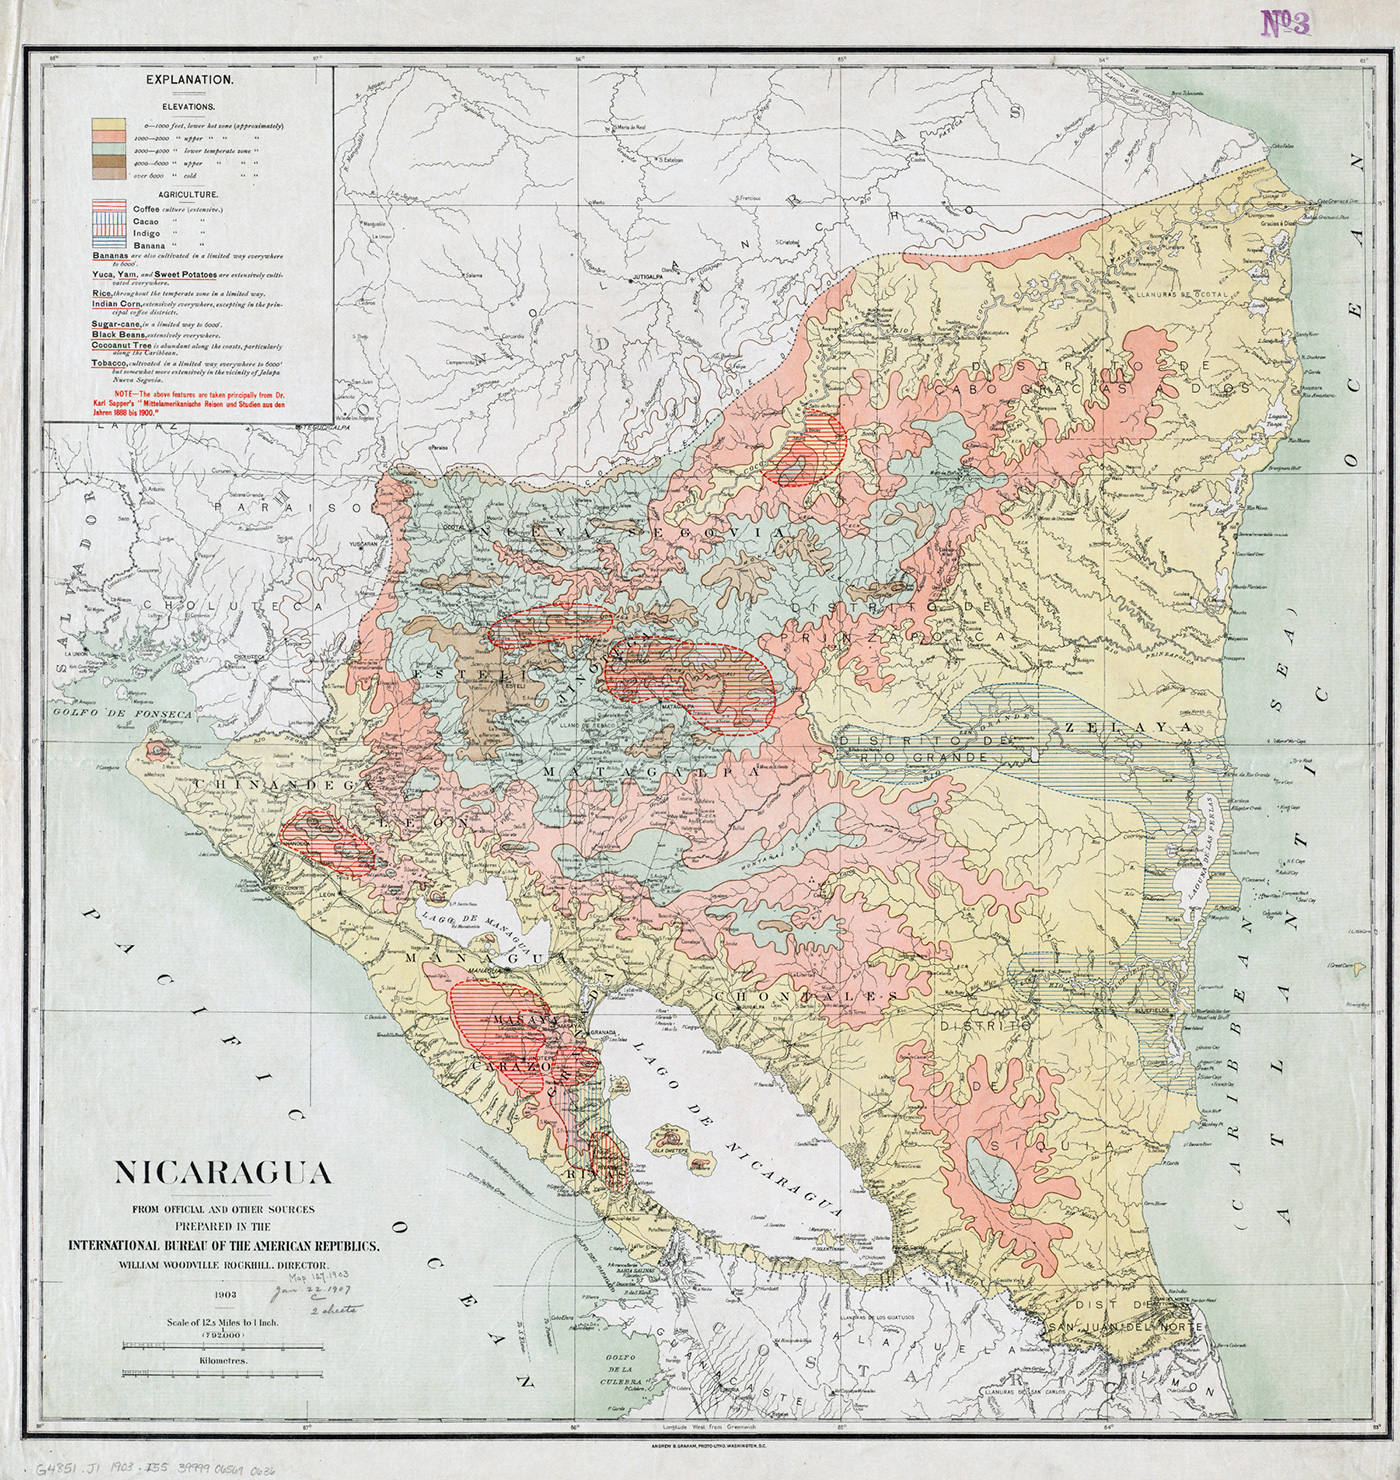 """Nicaragua"" by Norman B. Leventhal Map Center is licensed under CC BY 2.0"